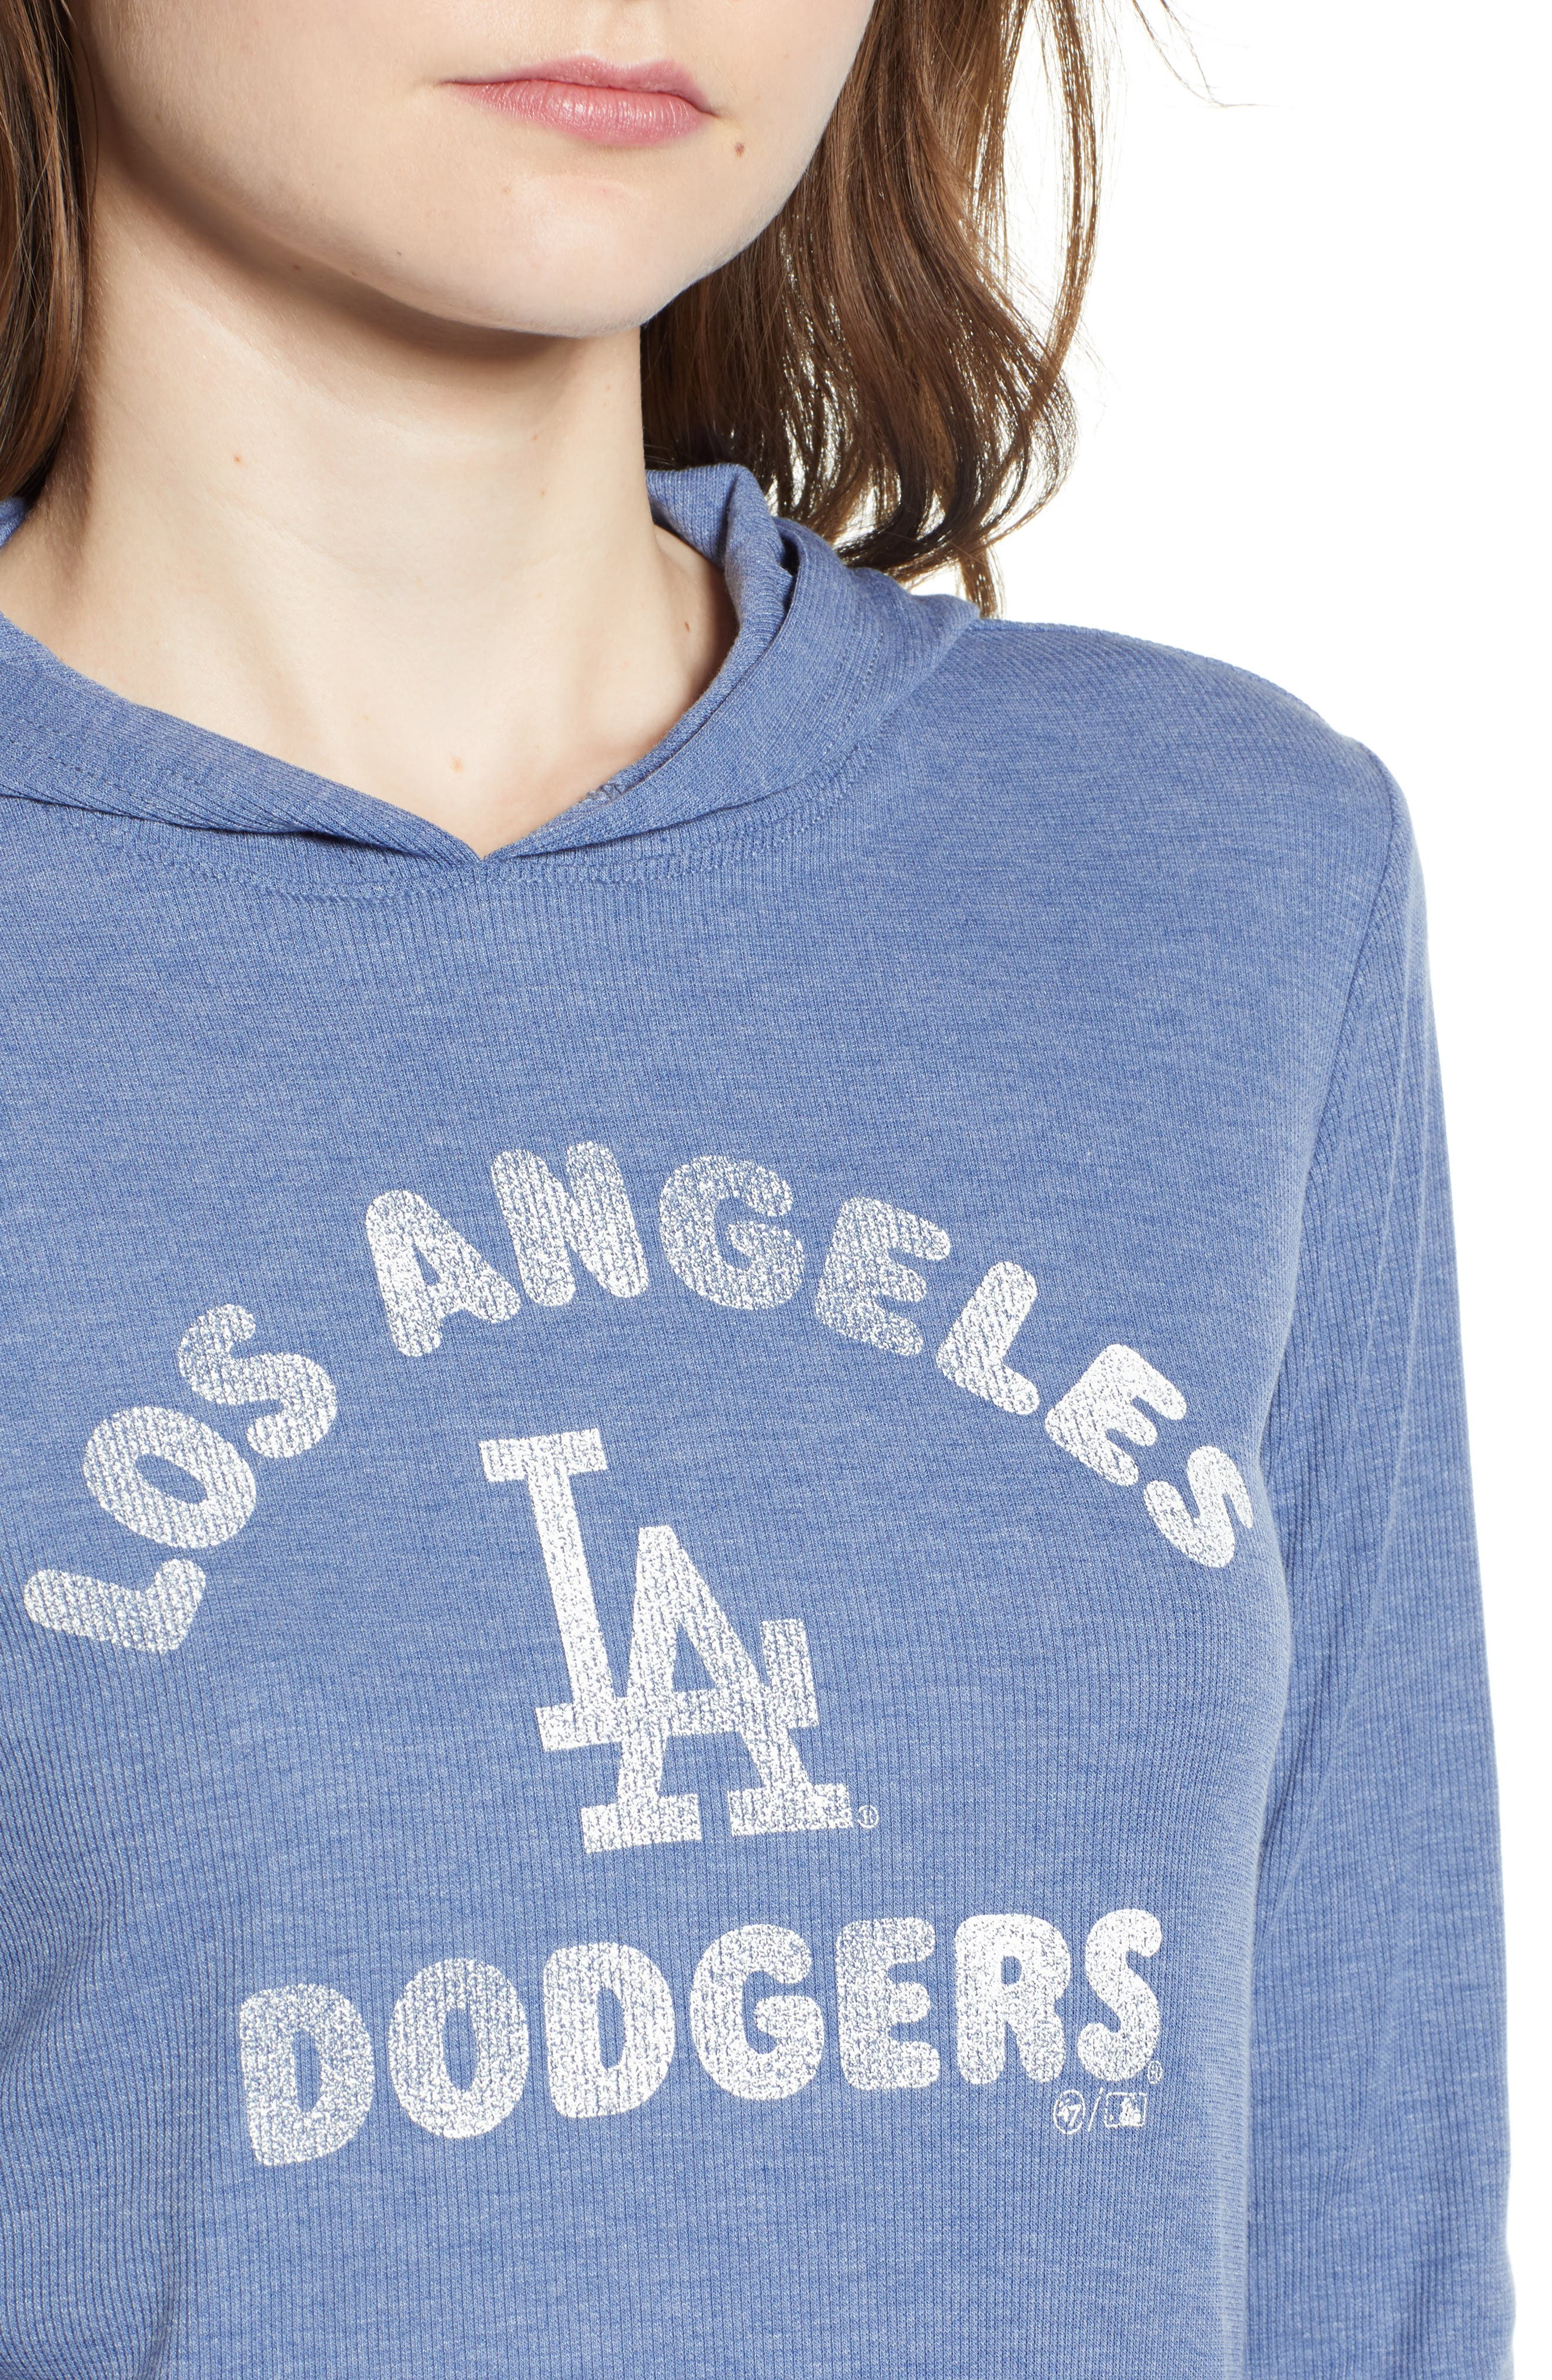 Campbell Los Angeles Dodgers Rib Knit Hooded Top,                             Alternate thumbnail 4, color,                             Bleacher Blue